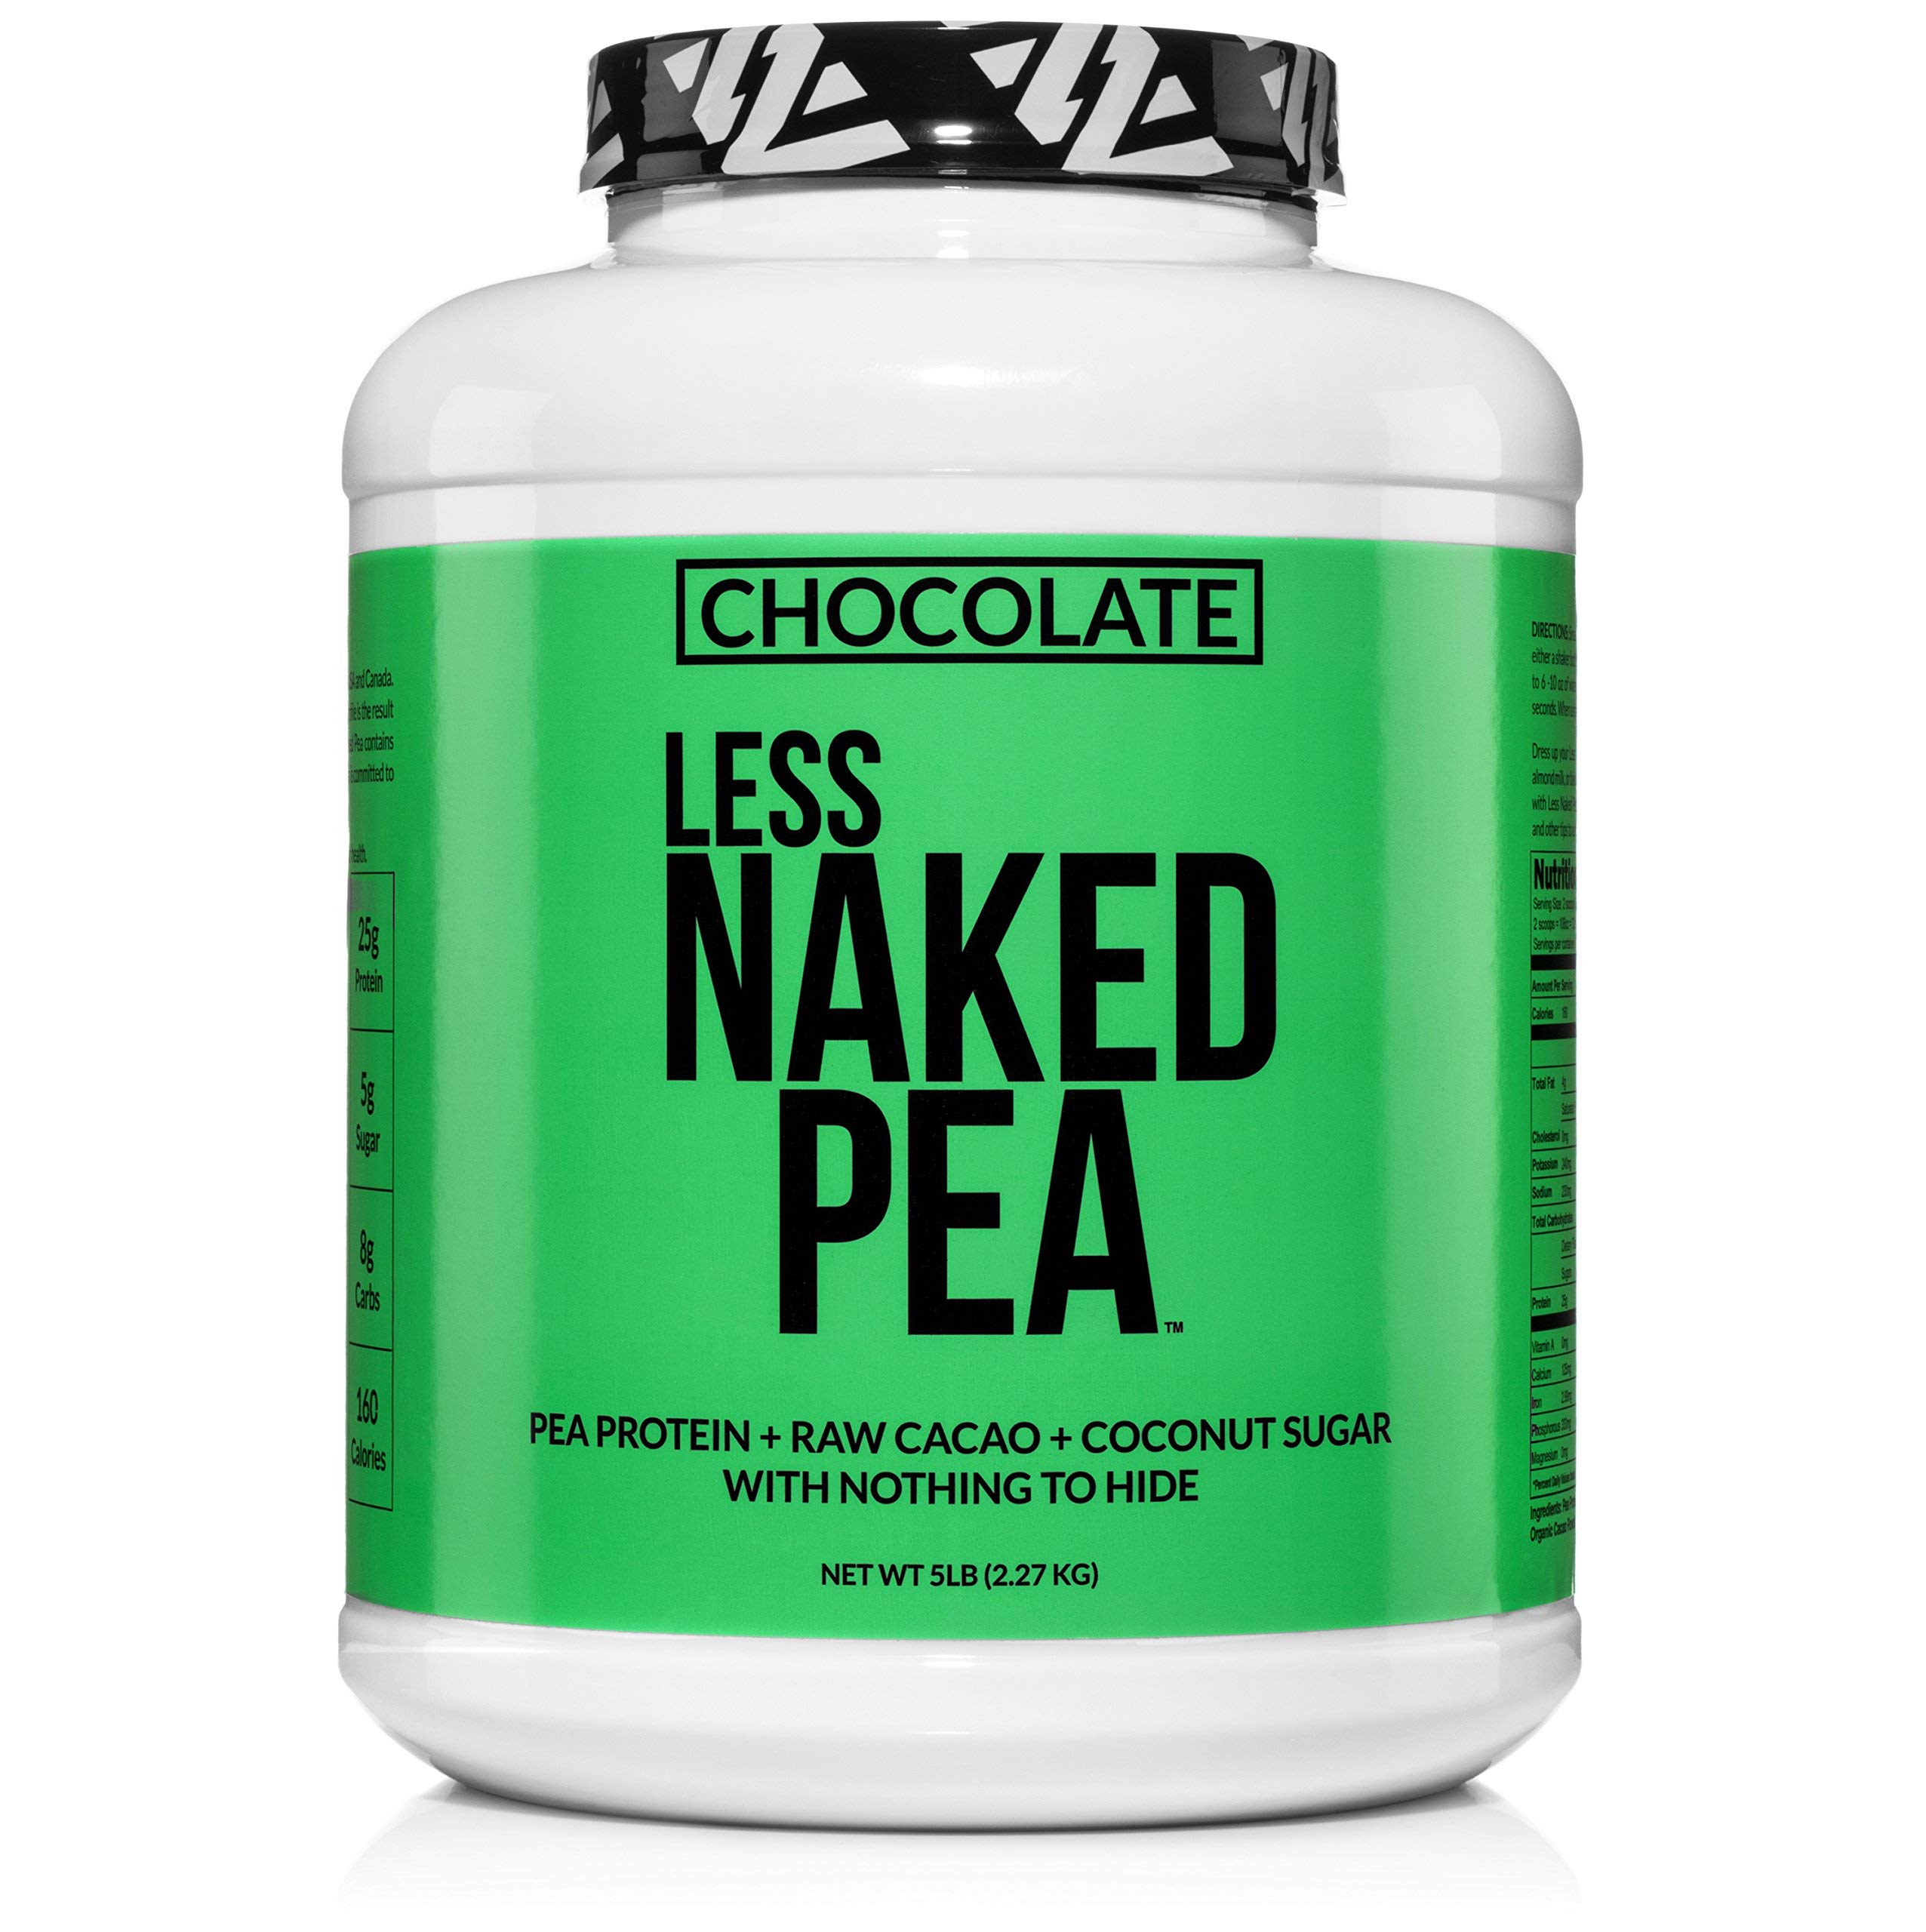 LESS NAKED PEA - CHOCOLATE PEA PROTEIN - Pea Protein Isolate from North American Farms - 5lb Bulk, Plant Based, Vegetarian & Vegan Protein. Easy to Digest, Non-GMO, Gluten Free, Lactose Free, Soy Free by NAKED nutrition